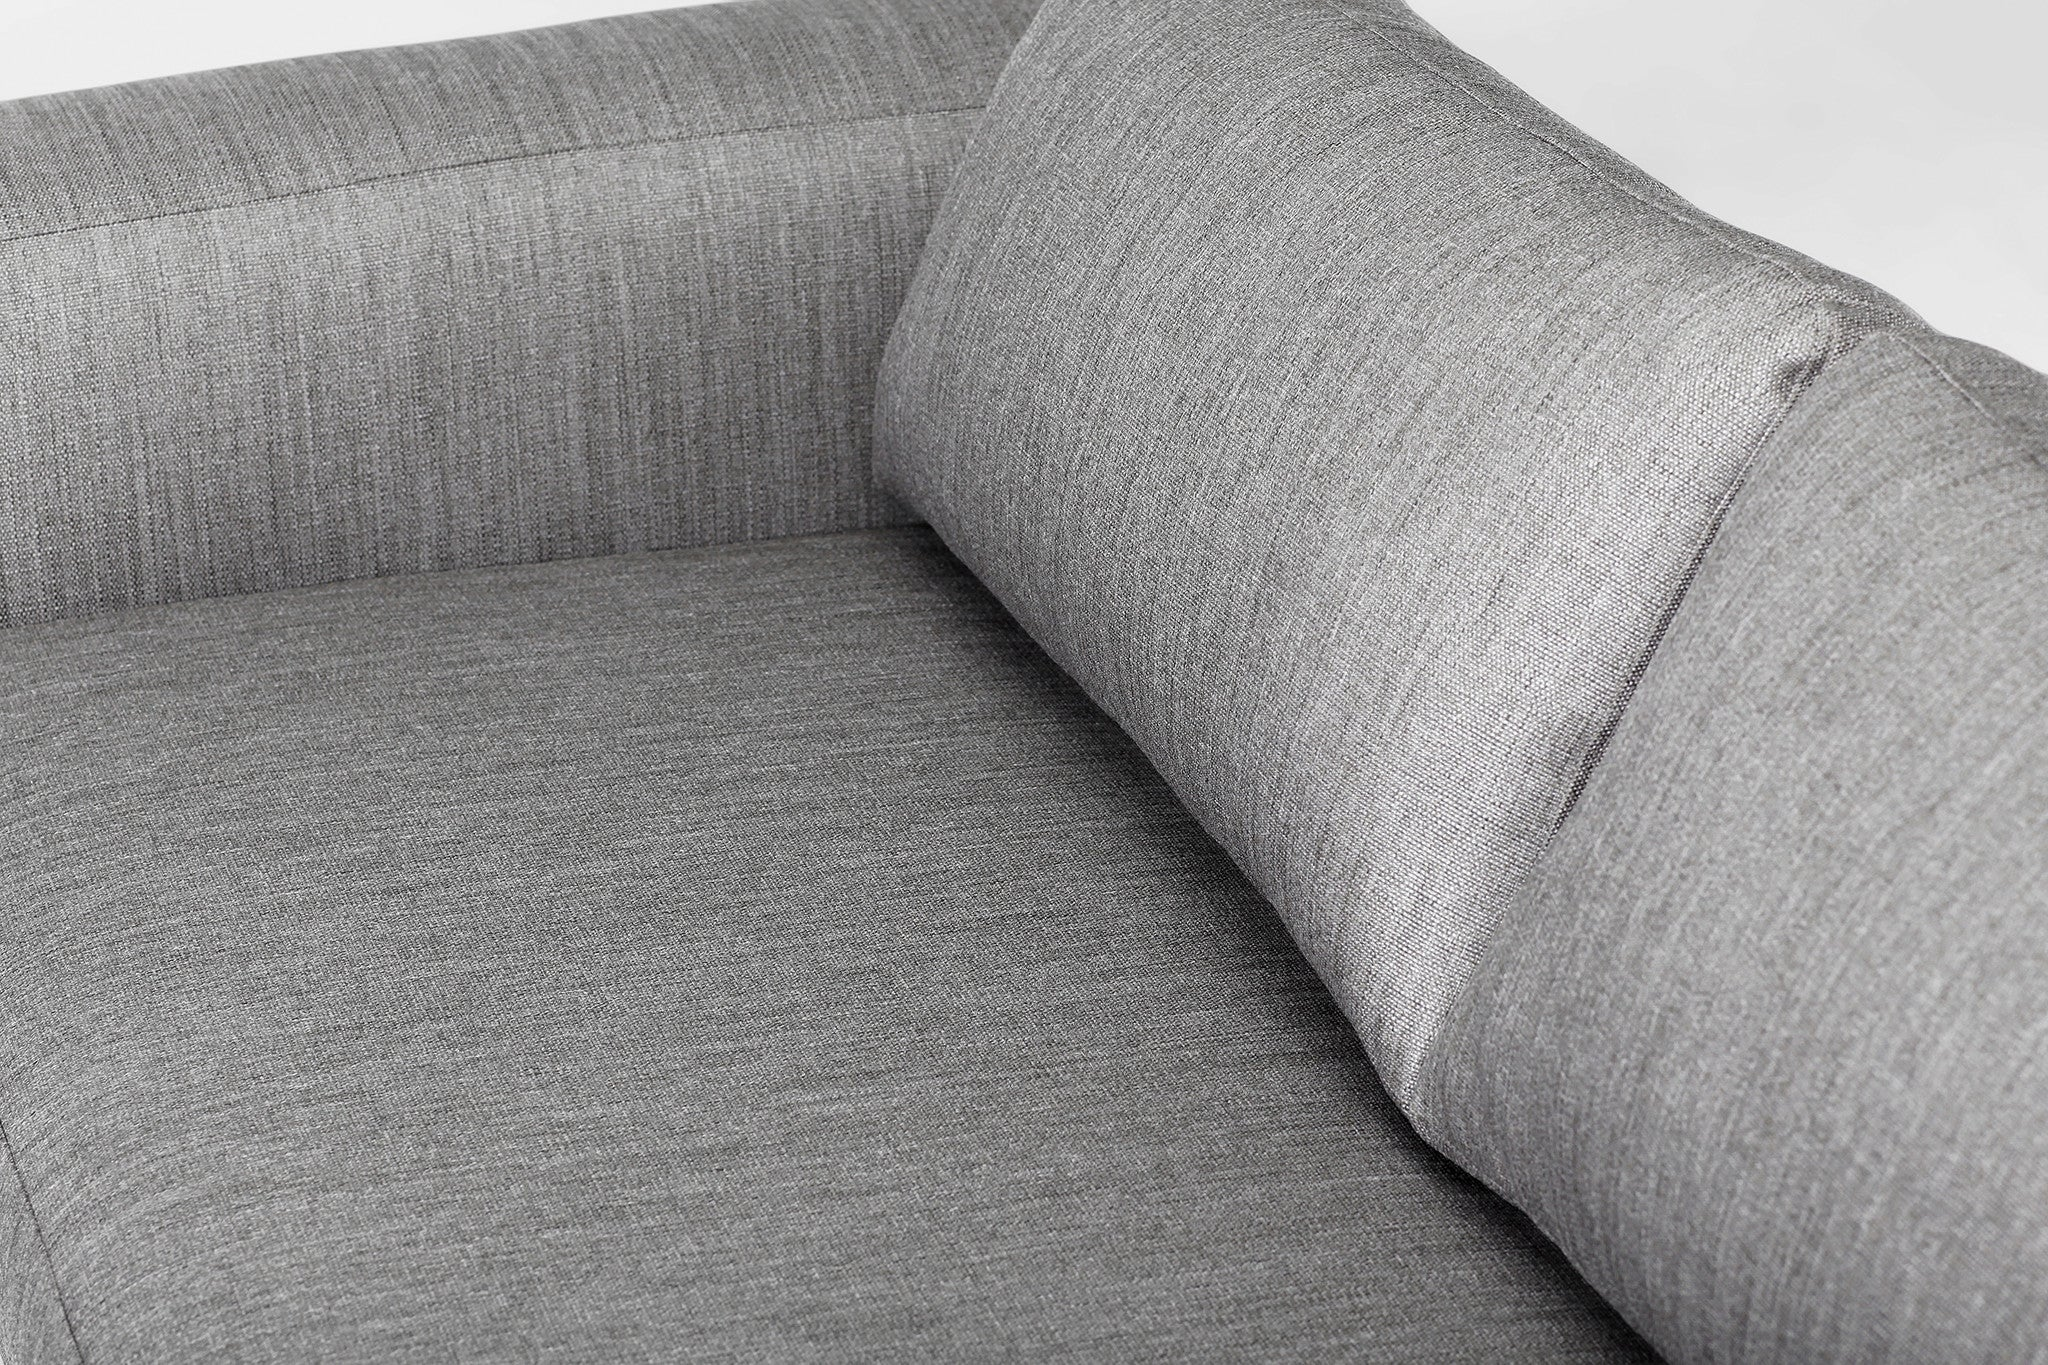 Mirage 3 Seater Sofa (Aluminium Grey)